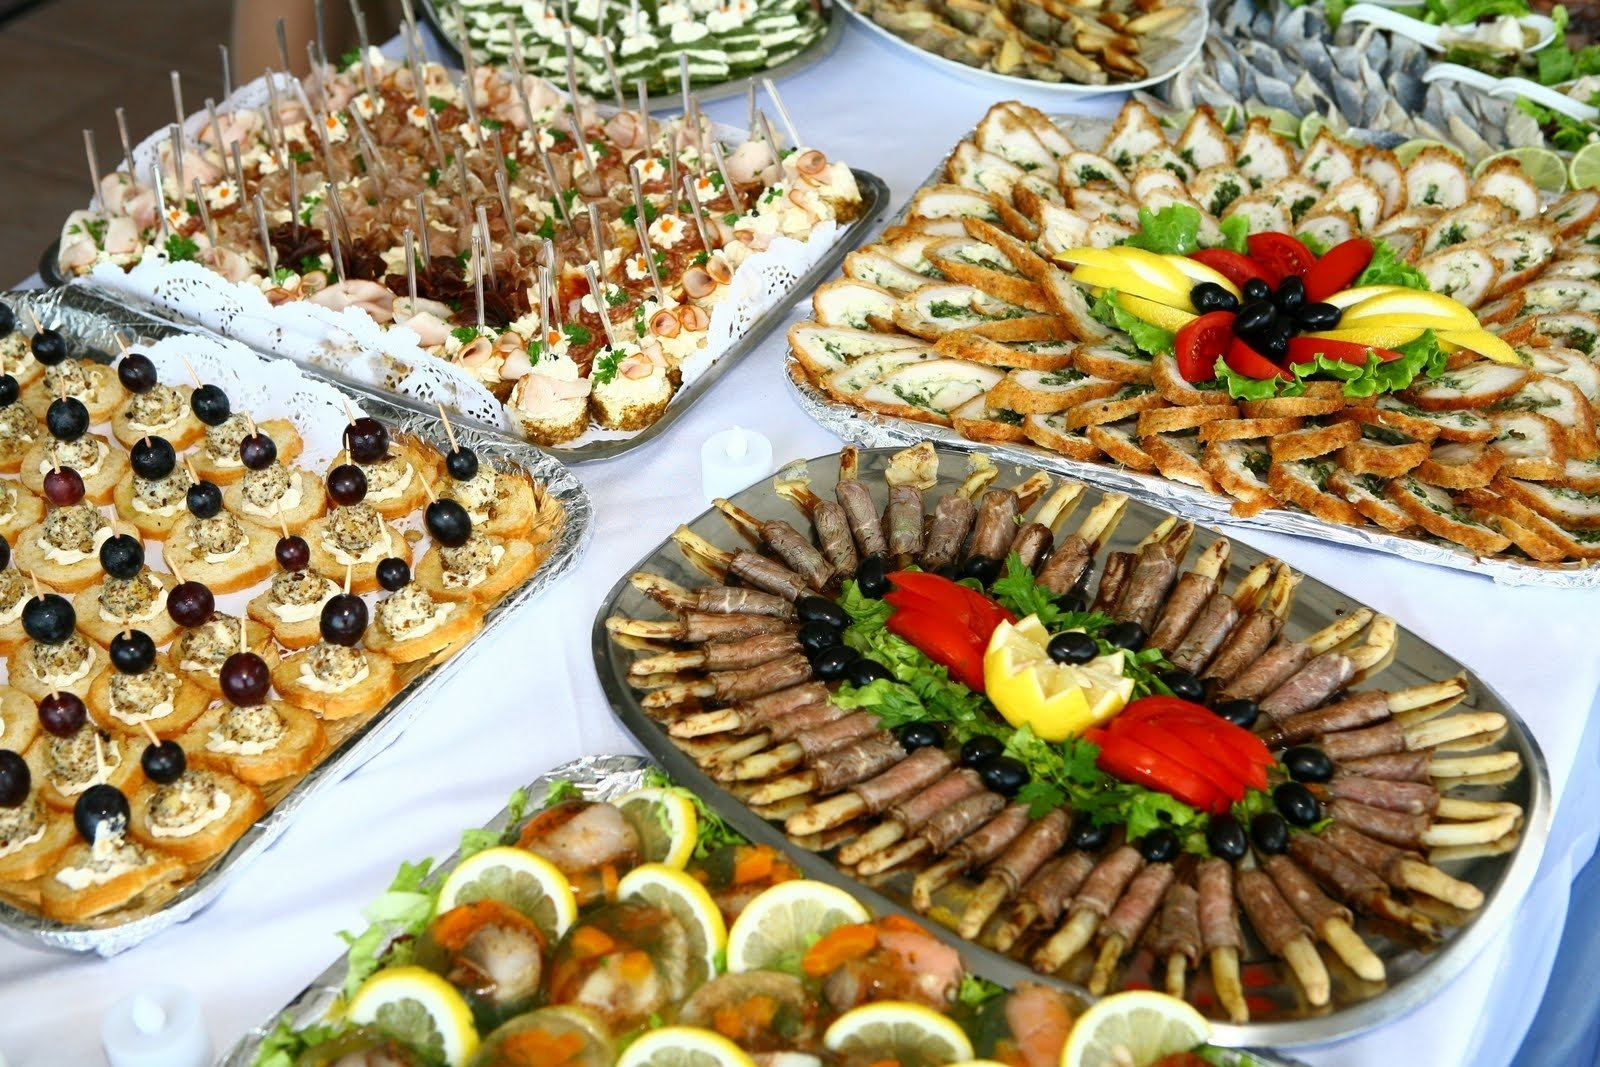 10 Pretty Birthday Party Finger Food Ideas For Adults holiday ideas party ideas arranging the foods 2 2020